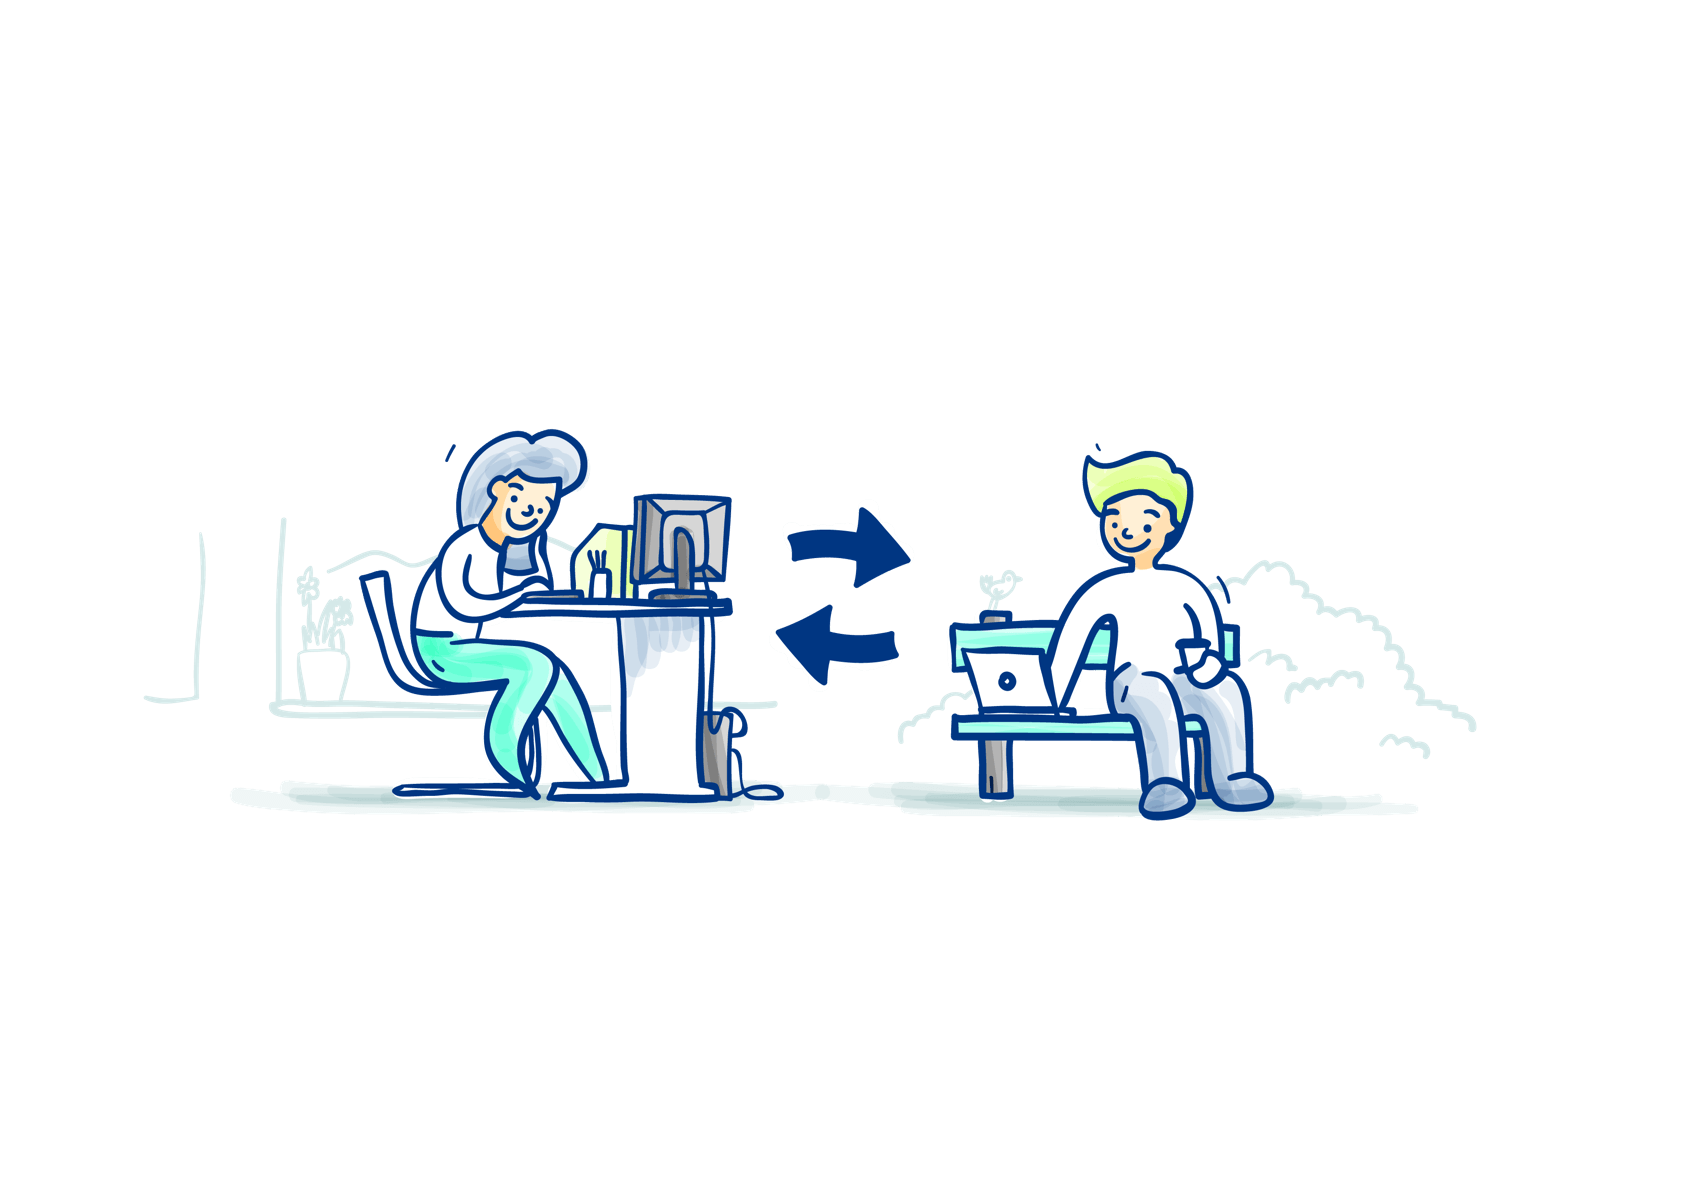 illustration of people using computers to connect with each other